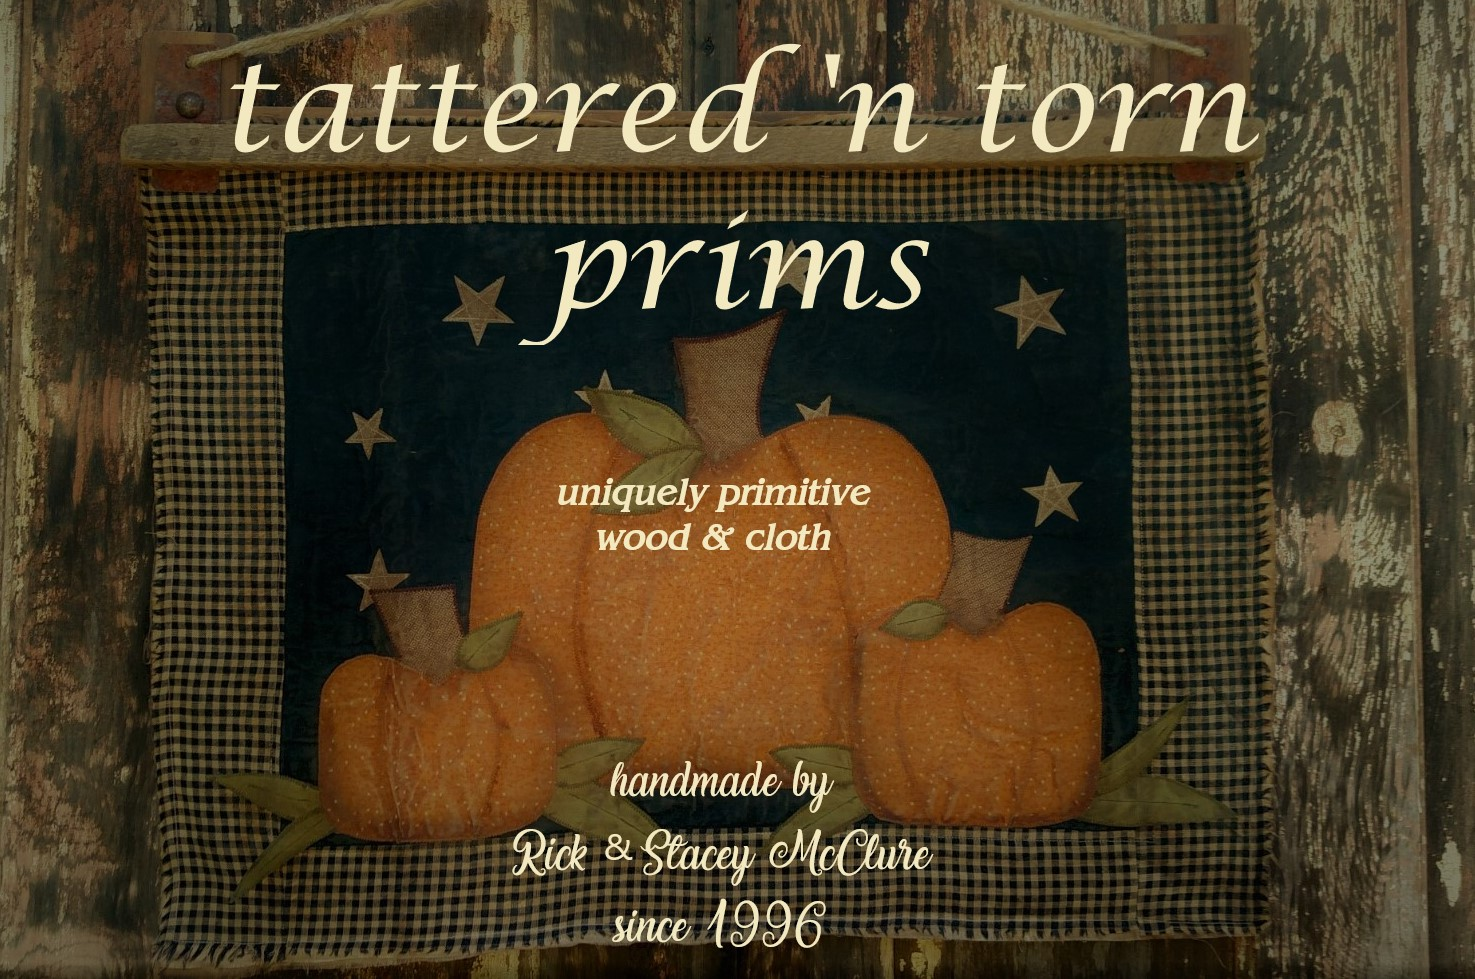 tattered 'n torn prims